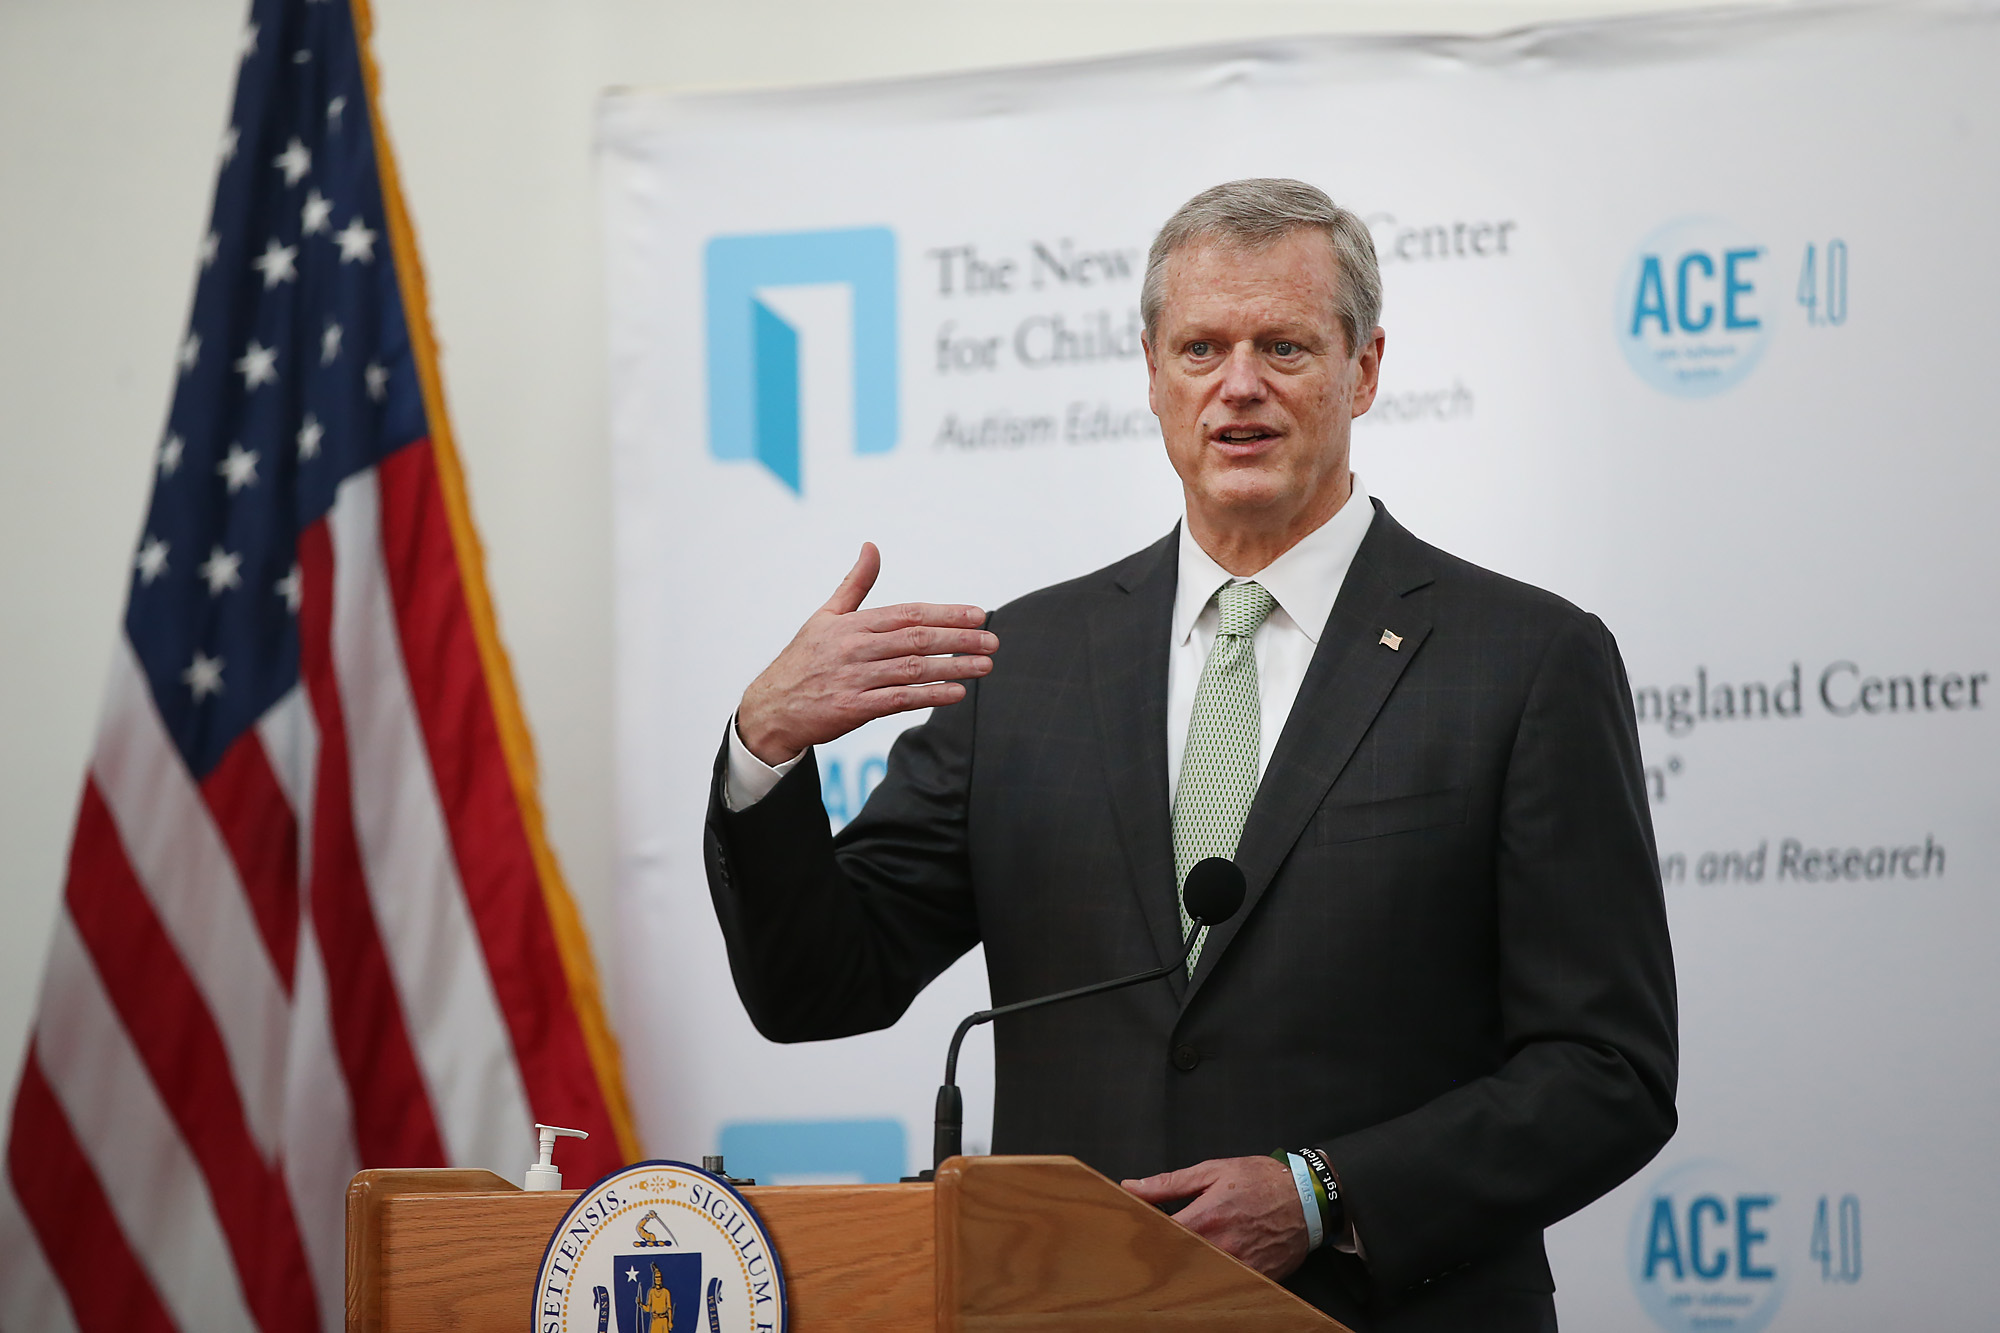 Governor Charlie Baker speaks at a press conference after a tour of The New England Center for Children on July 13, 2020 in Southborough, Massachusetts.